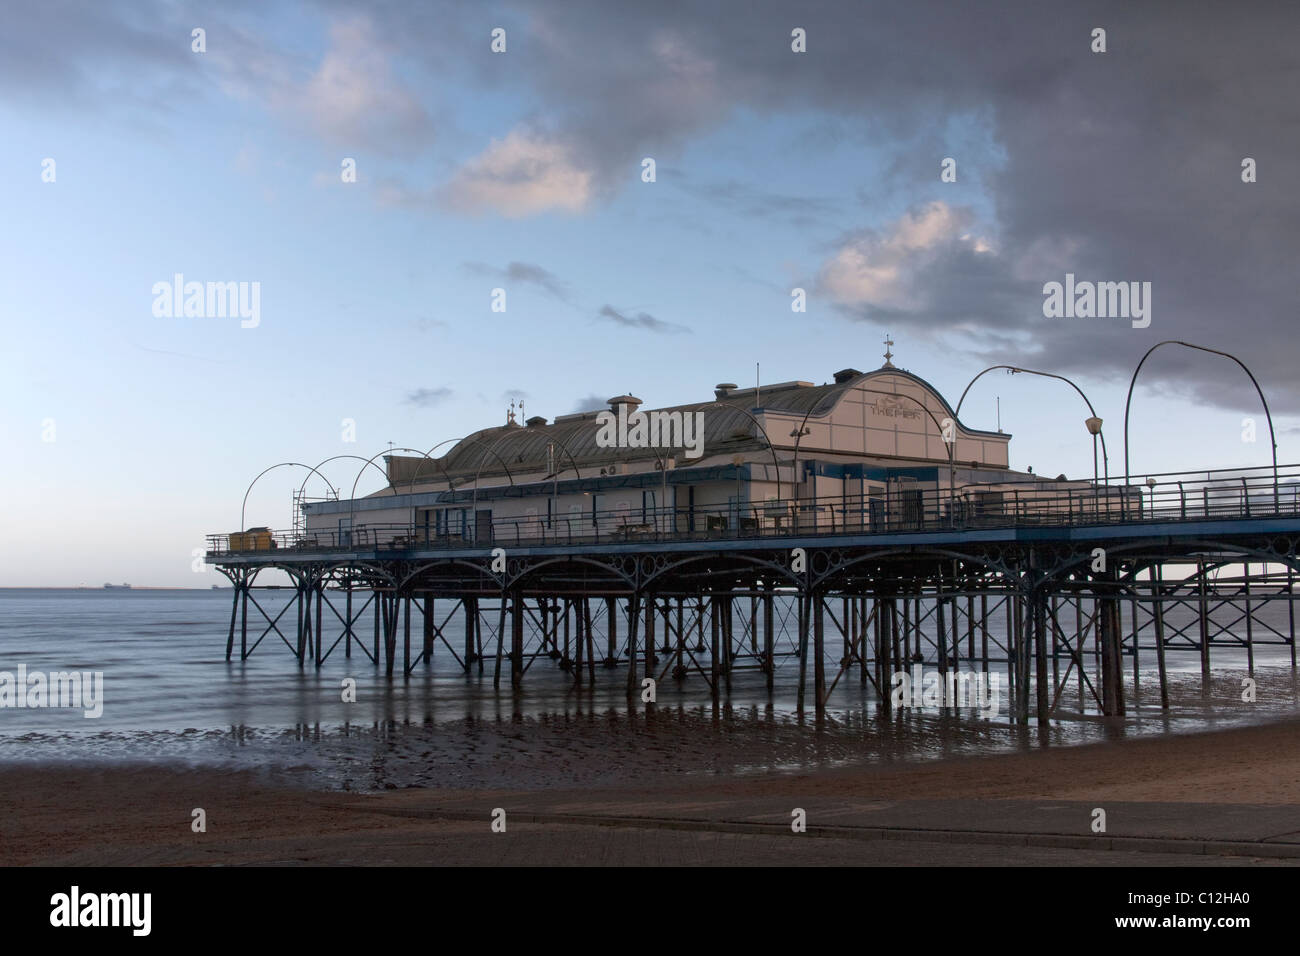 Cleethorpes Pier, North East Lincolnshire Feb 2011 - Stock Image